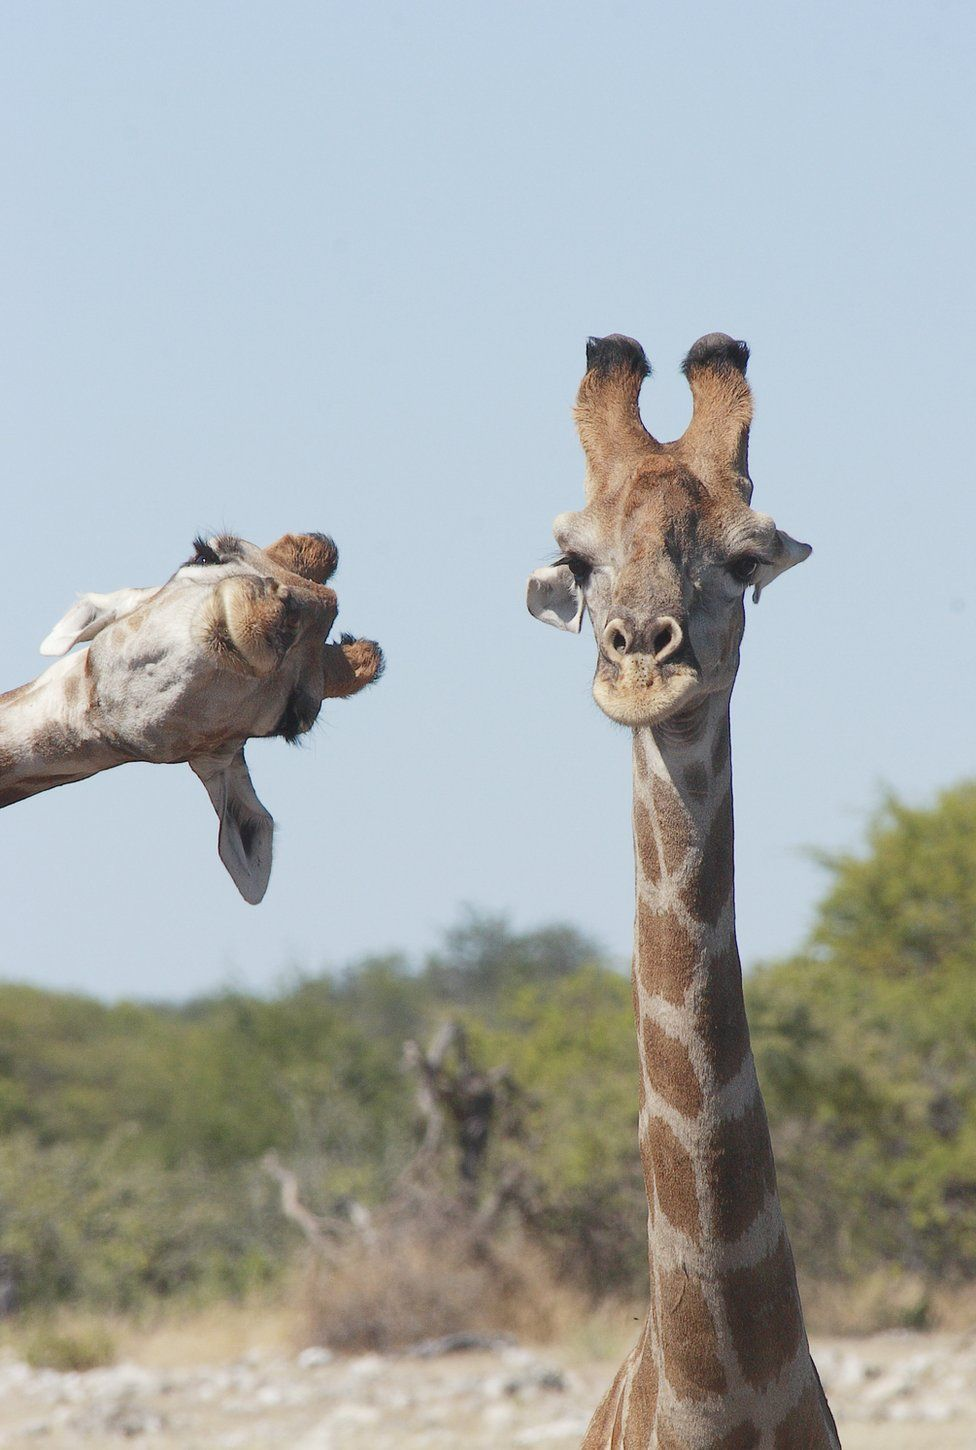 A giraffe looking sideways into the photographic frame of another giraffe